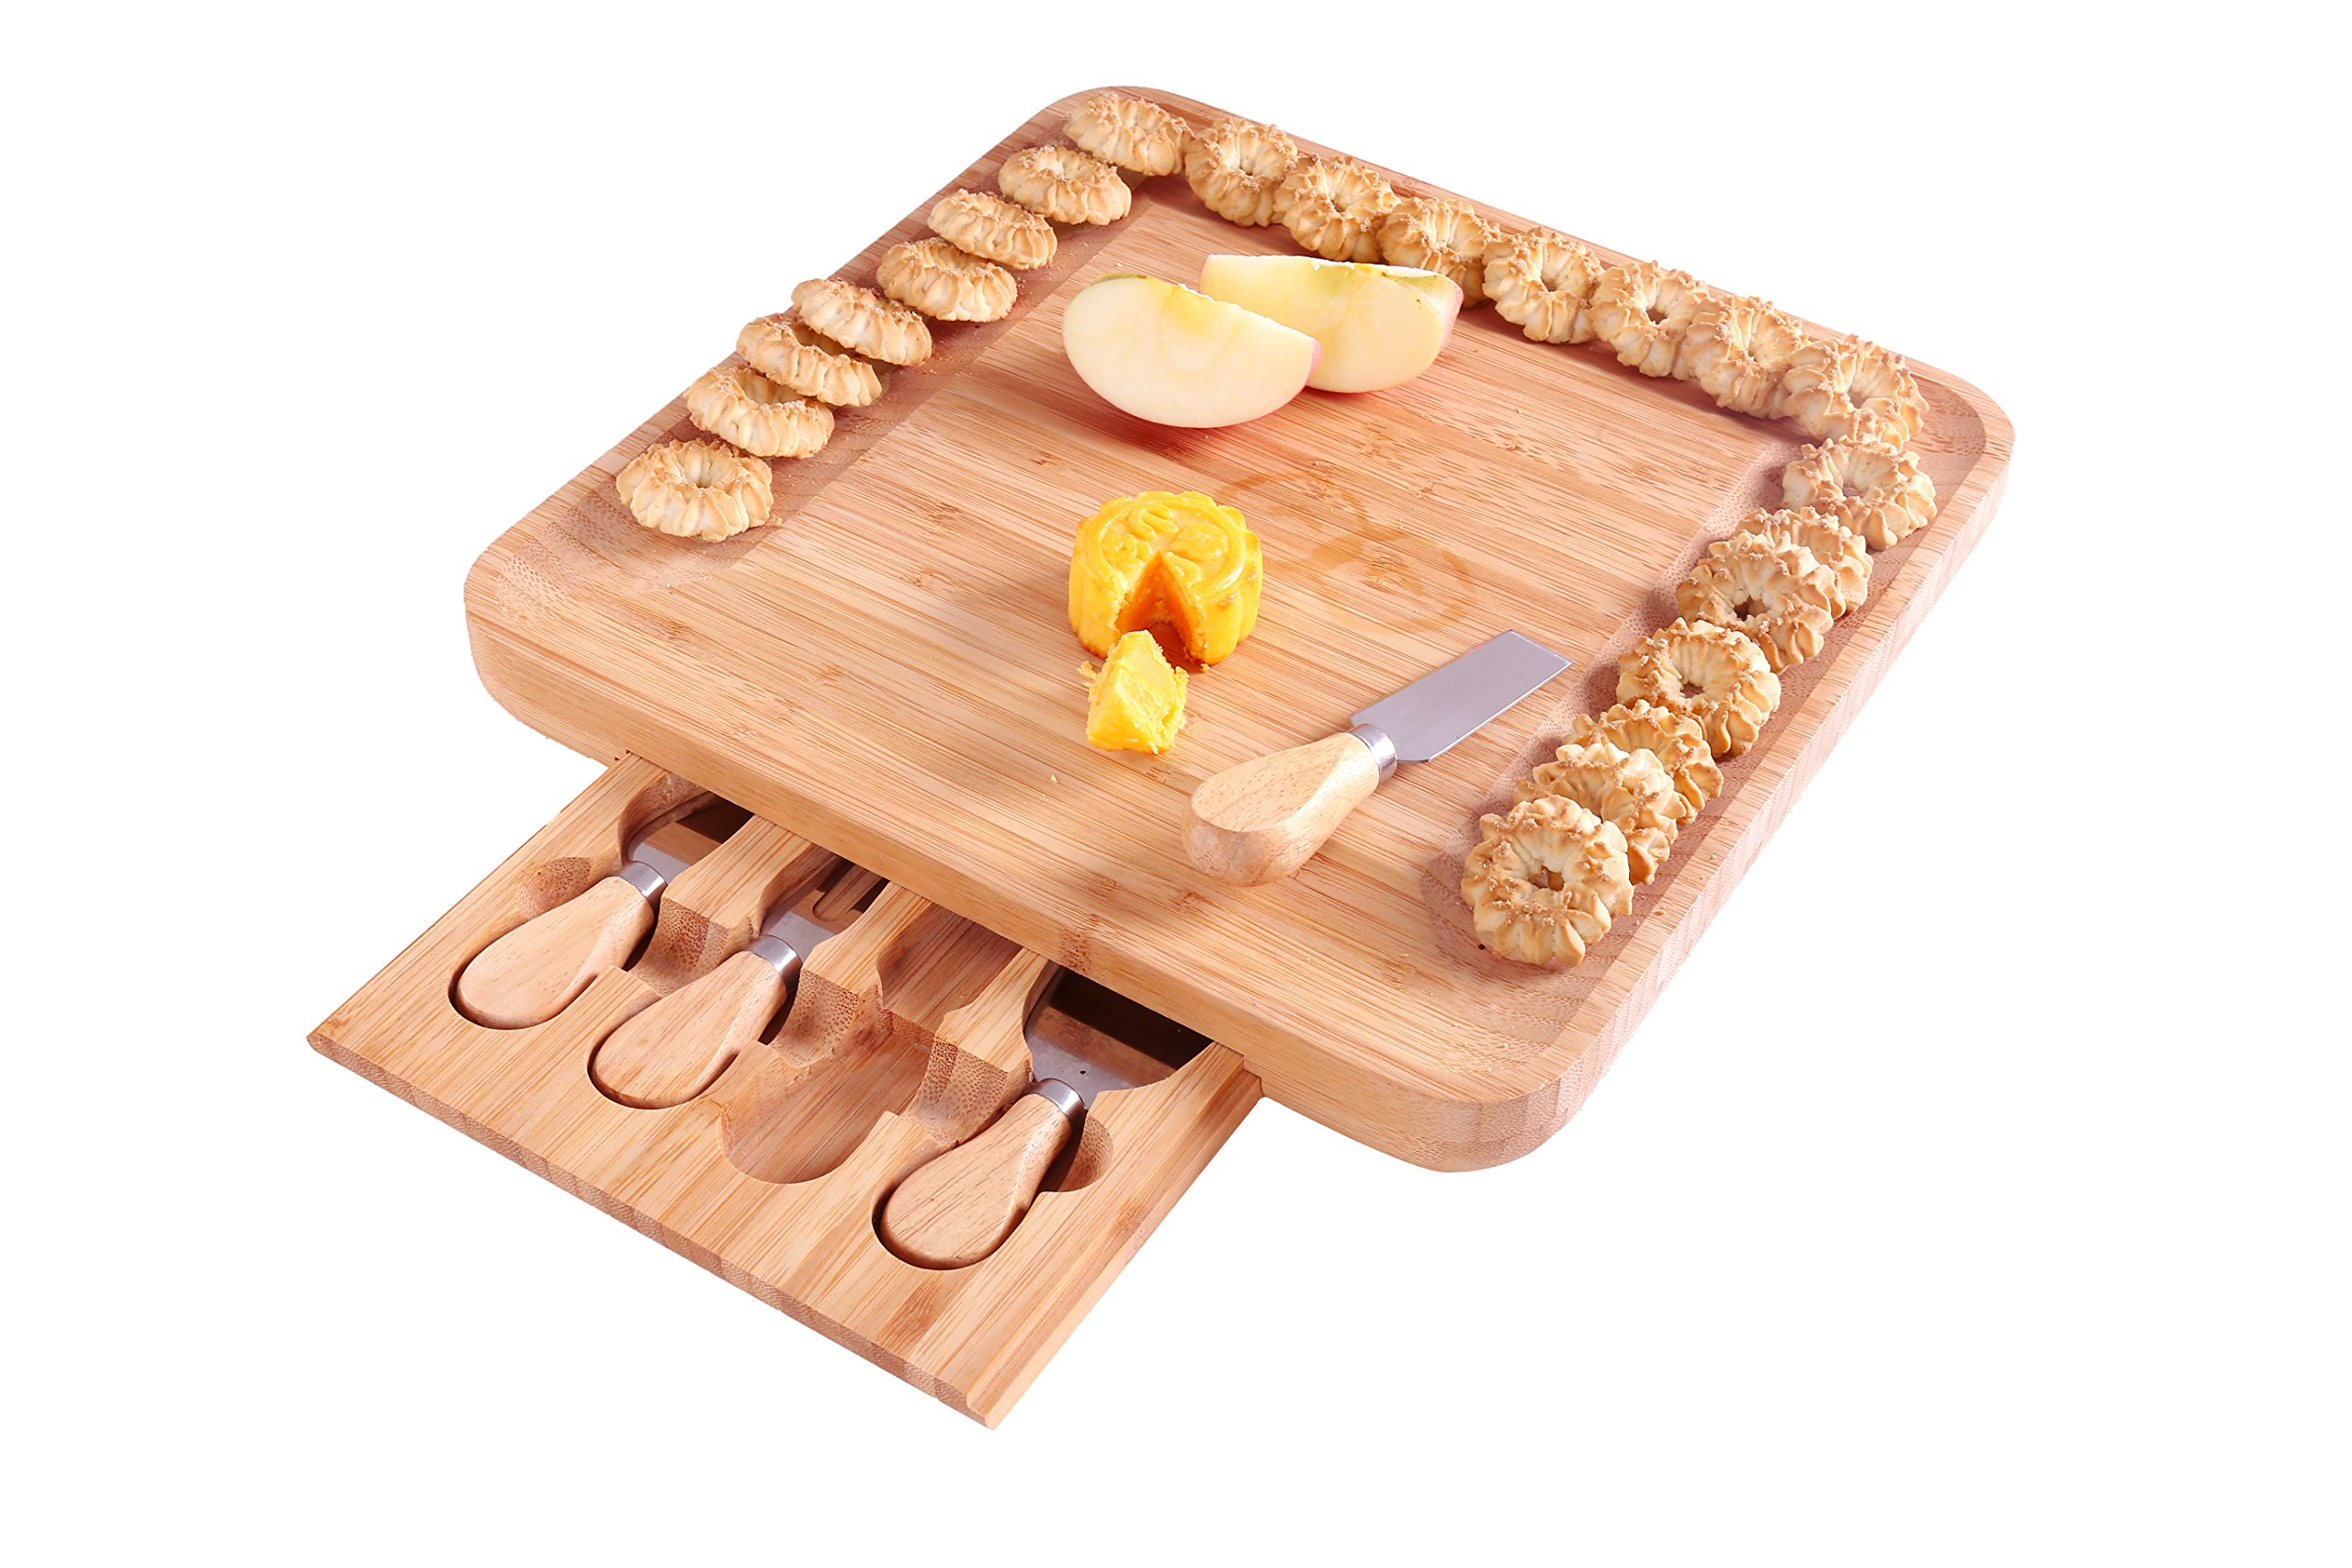 ISINO Bamboo Cheese Set with Hidden Slide-out Drawer and 4 Piece Cutlery Set , Square Wooden Platter and Serving Tray with Non Slip Feet for Wine , Crackers , Brie and Meat , Size 13''x13''